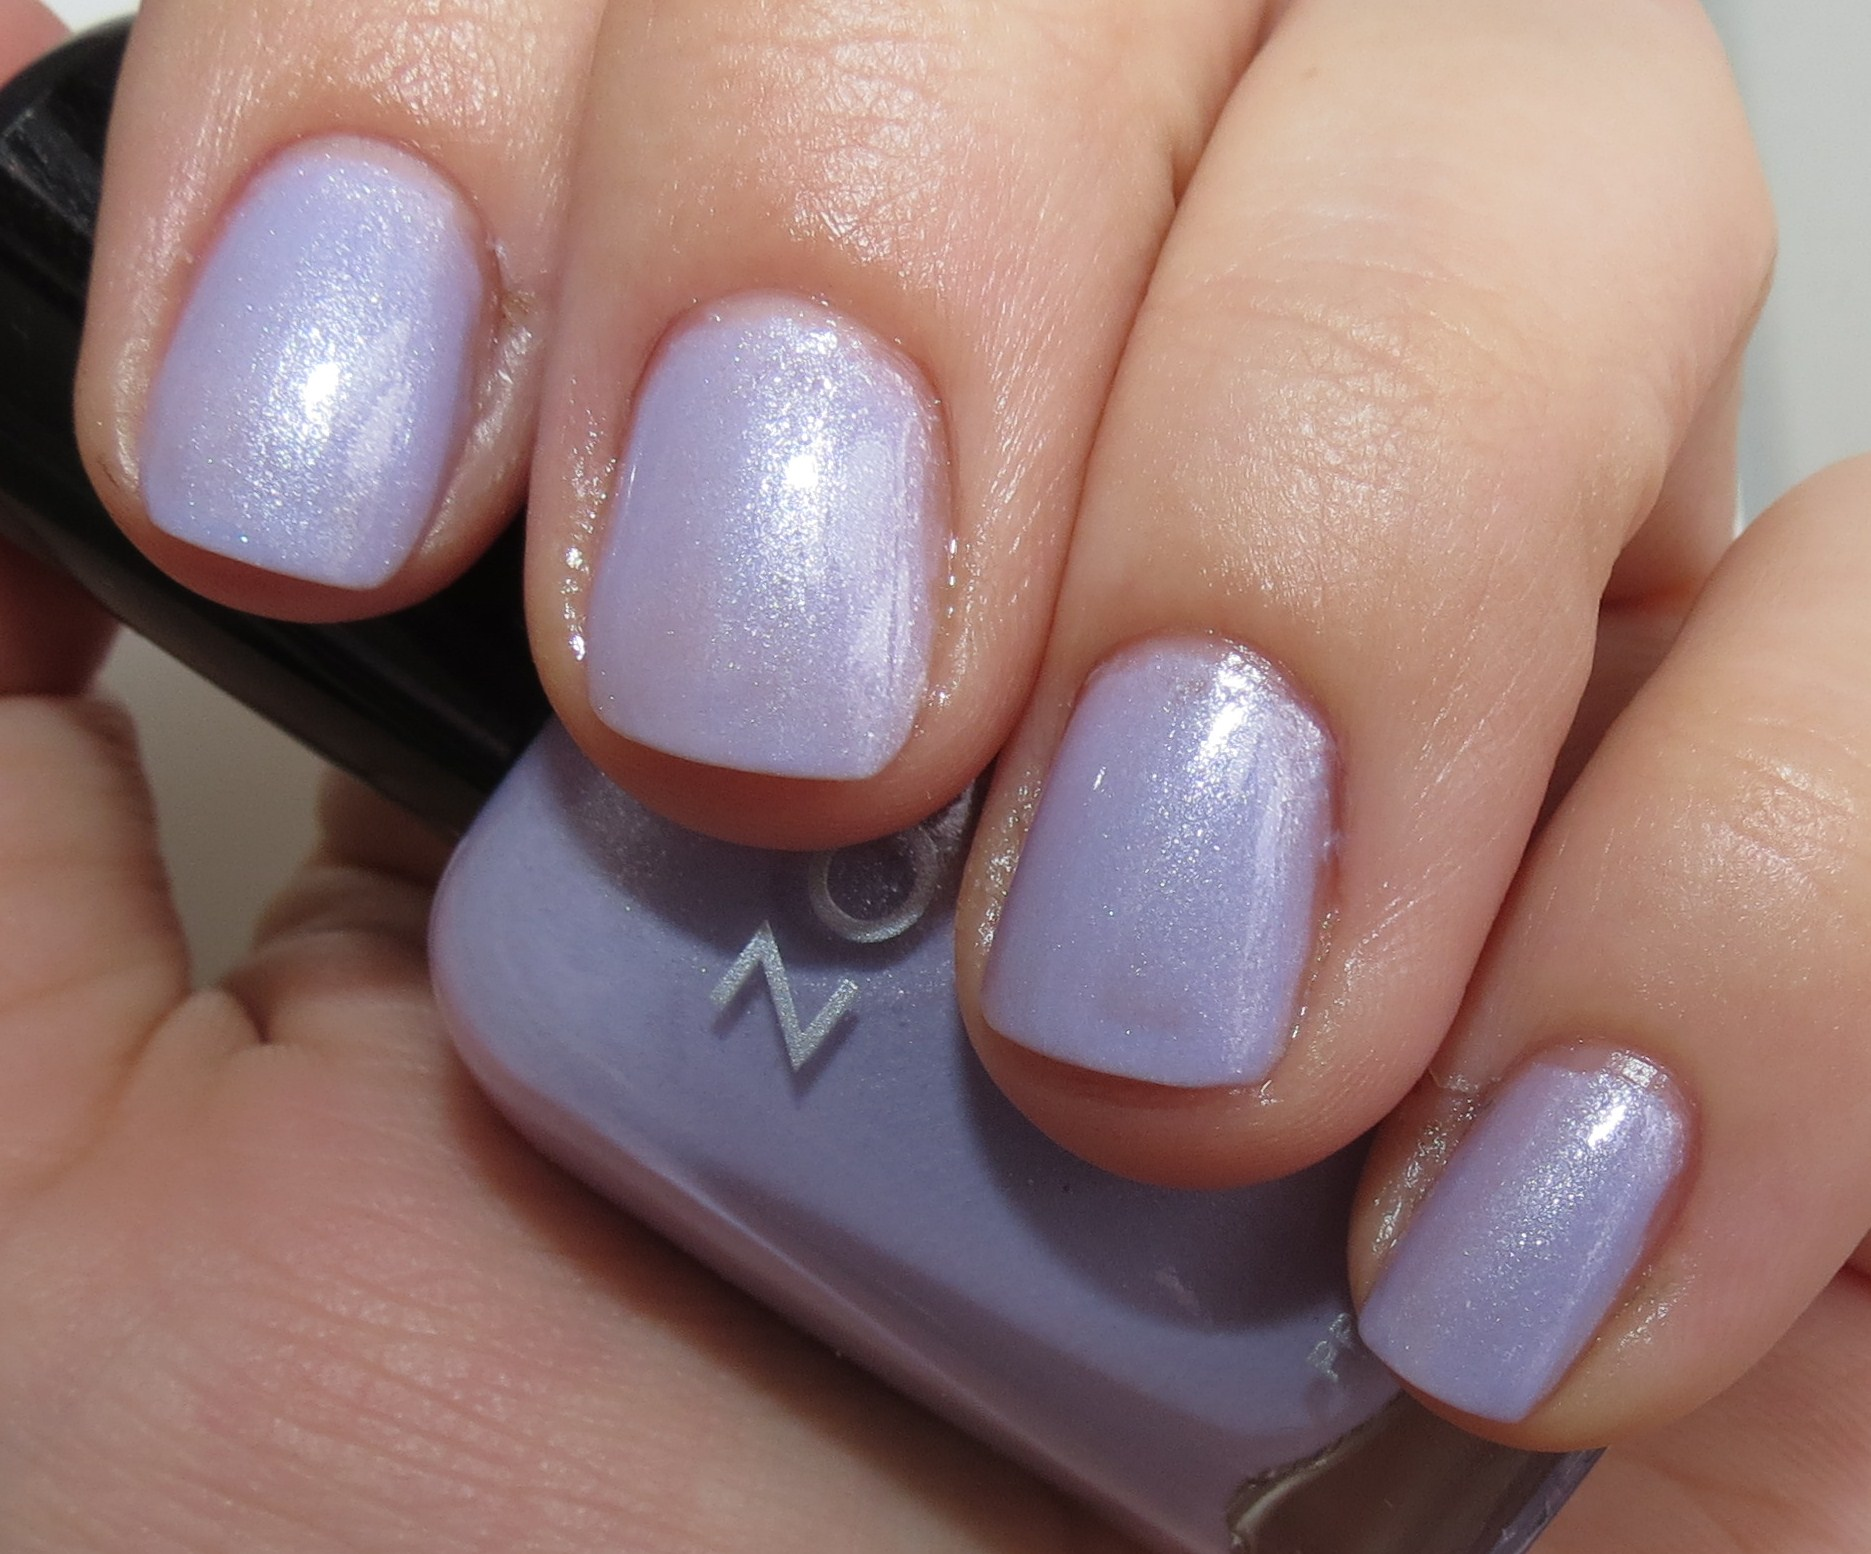 Zoya Lovely Nail Polish Collection Swatches & Review - Spring 2013 ...